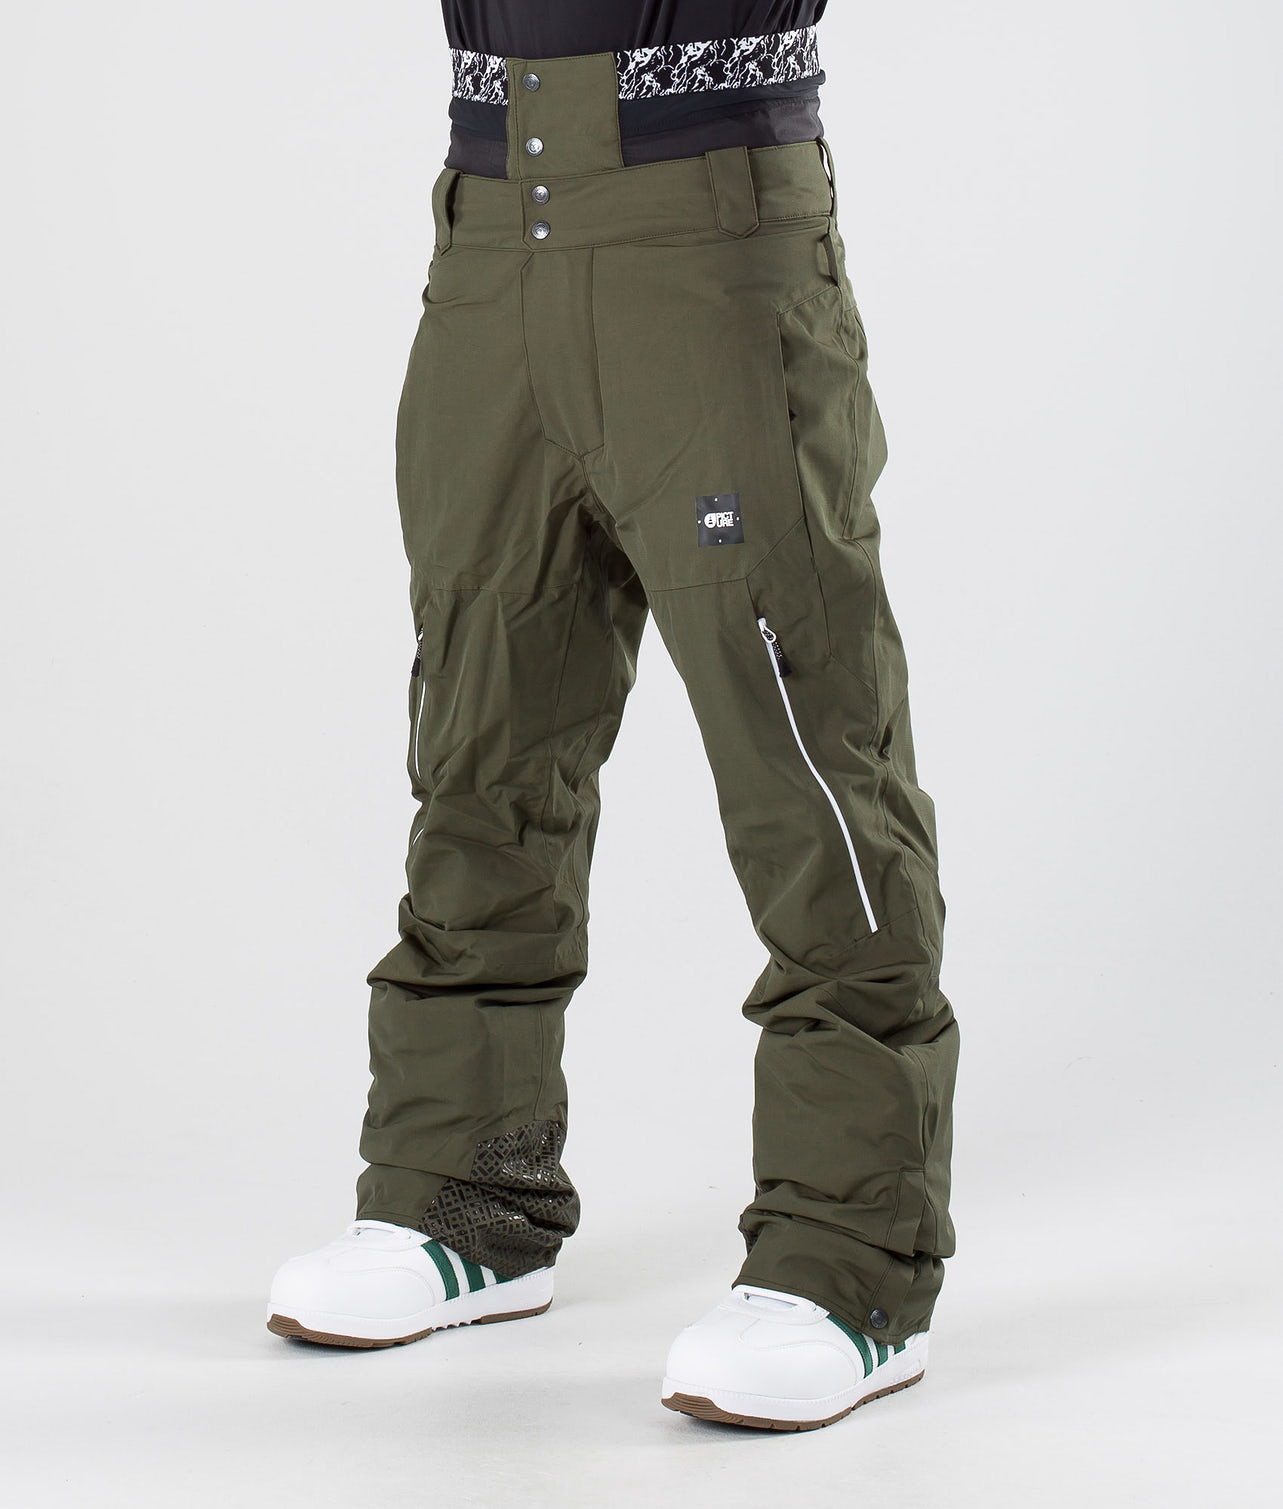 Buy Object Snow Pants from Picture at Ridestore.com - Always free shipping, free returns and 30 days money back guarantee